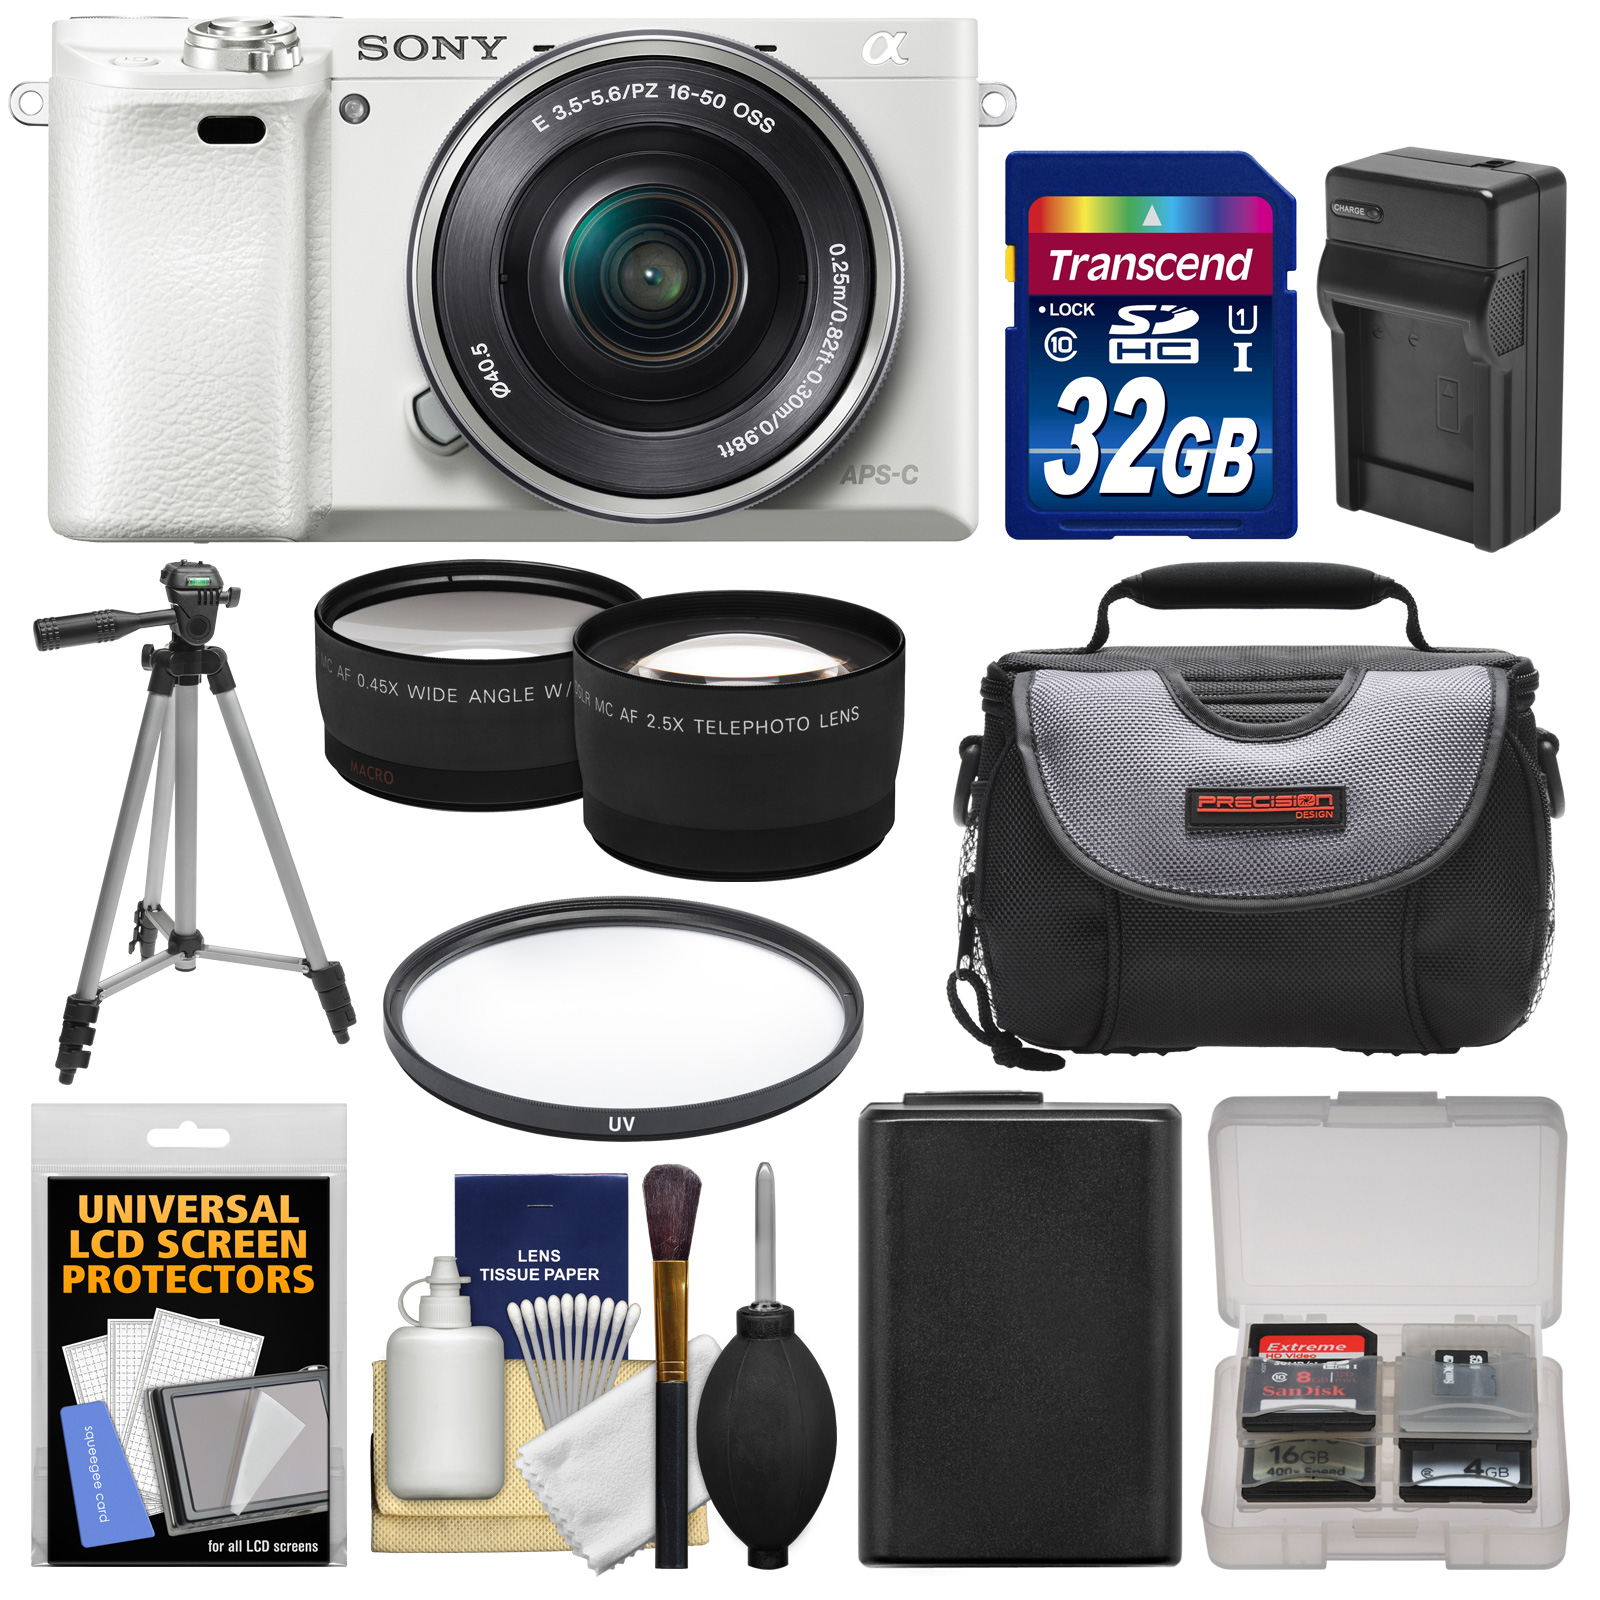 Sony Alpha A6000 Wi-Fi Digital Camera & 16-50mm Lens (White) with 32GB Card   Case   Battery/Charger   Tripod   Filter   Tele/Wide Lens Kit